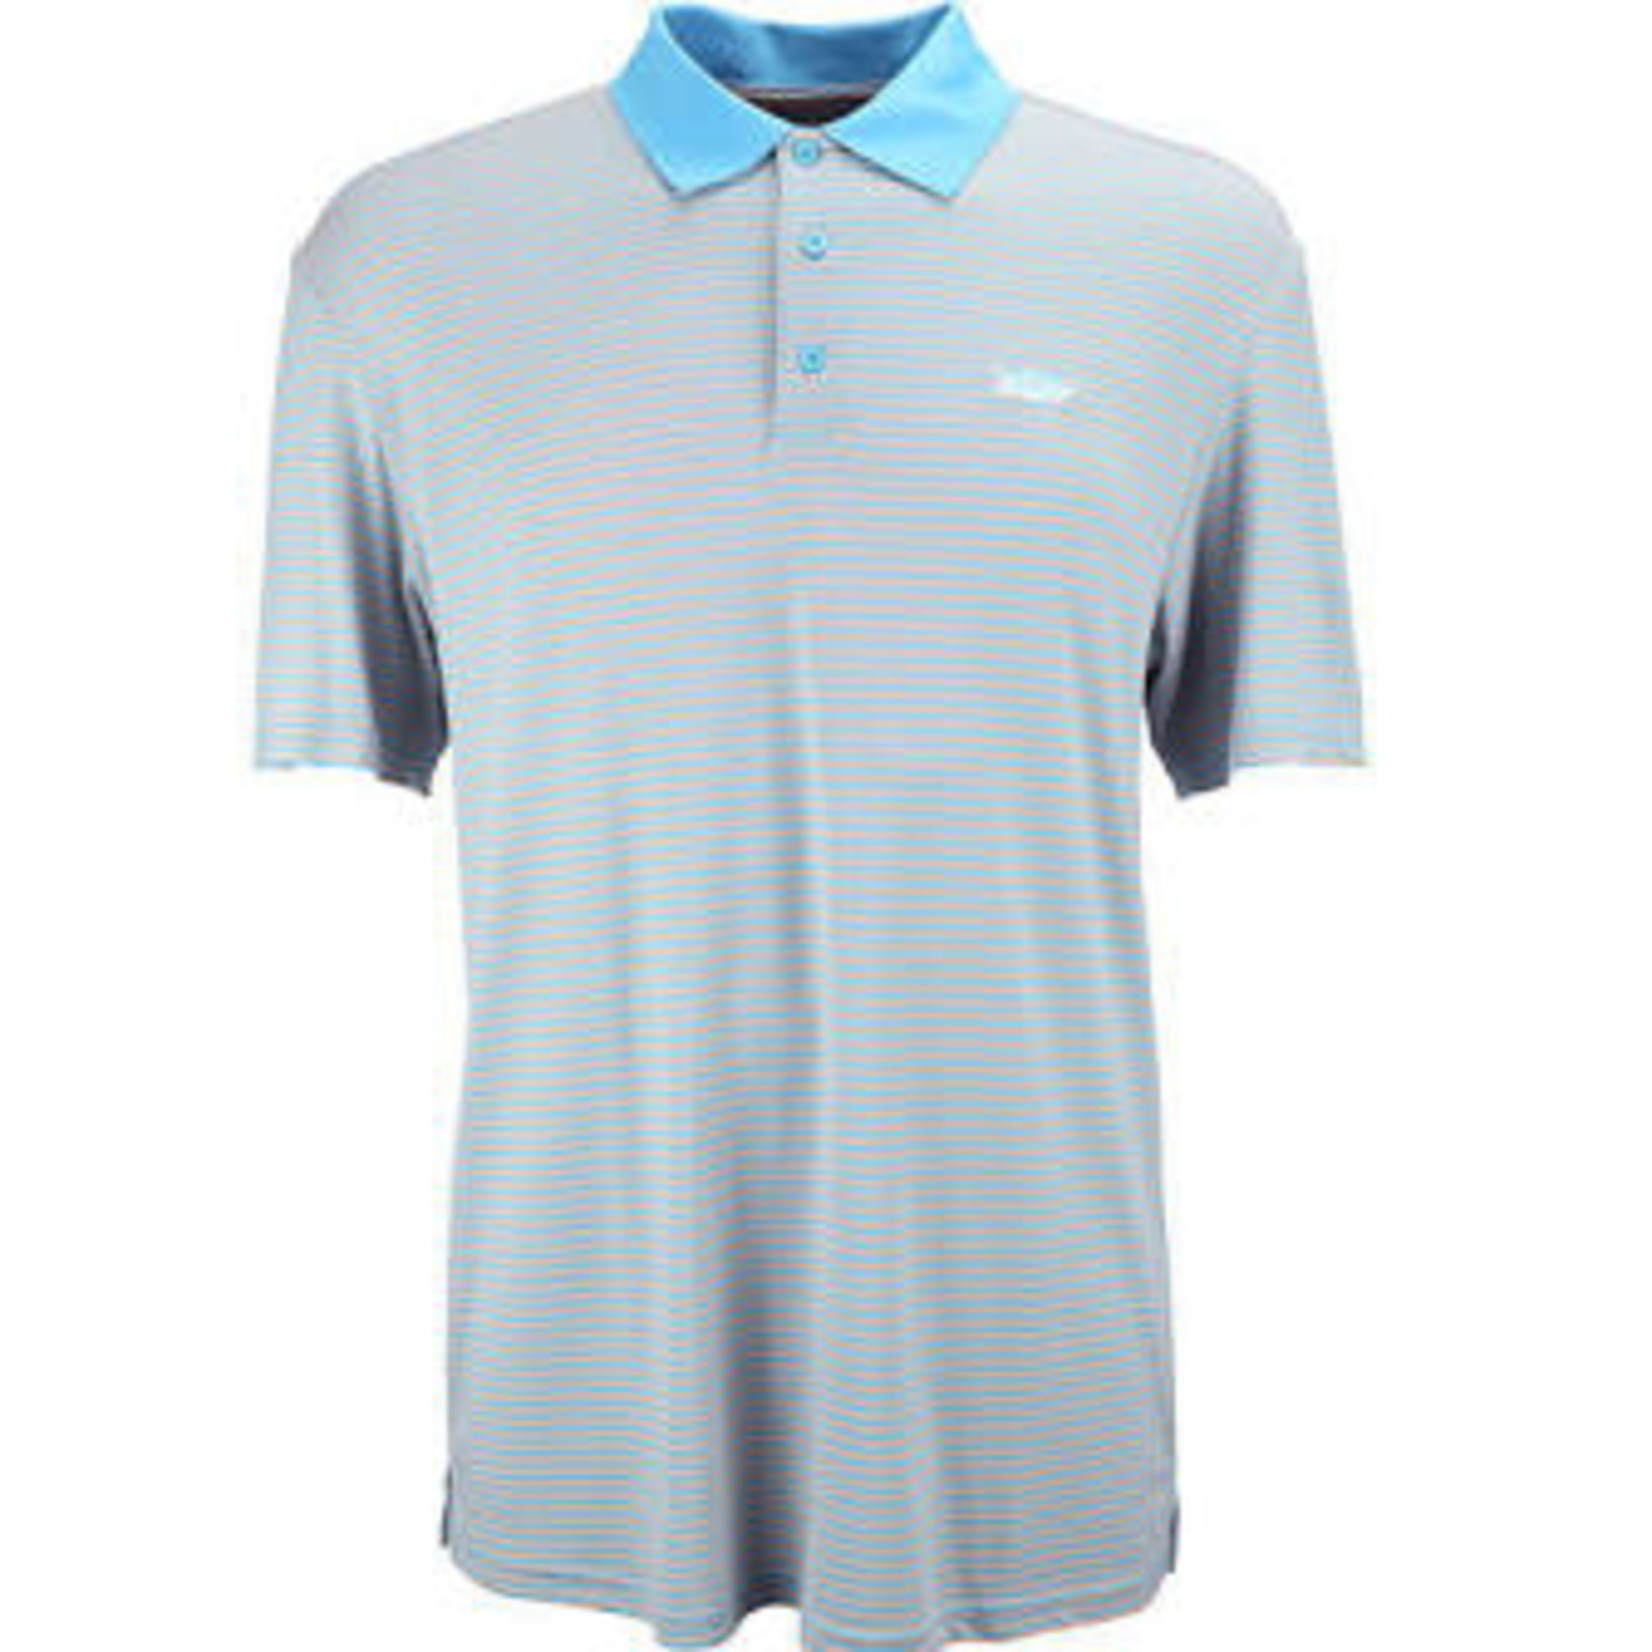 AFTCO AFTCO Divot Performance Polo Shirt